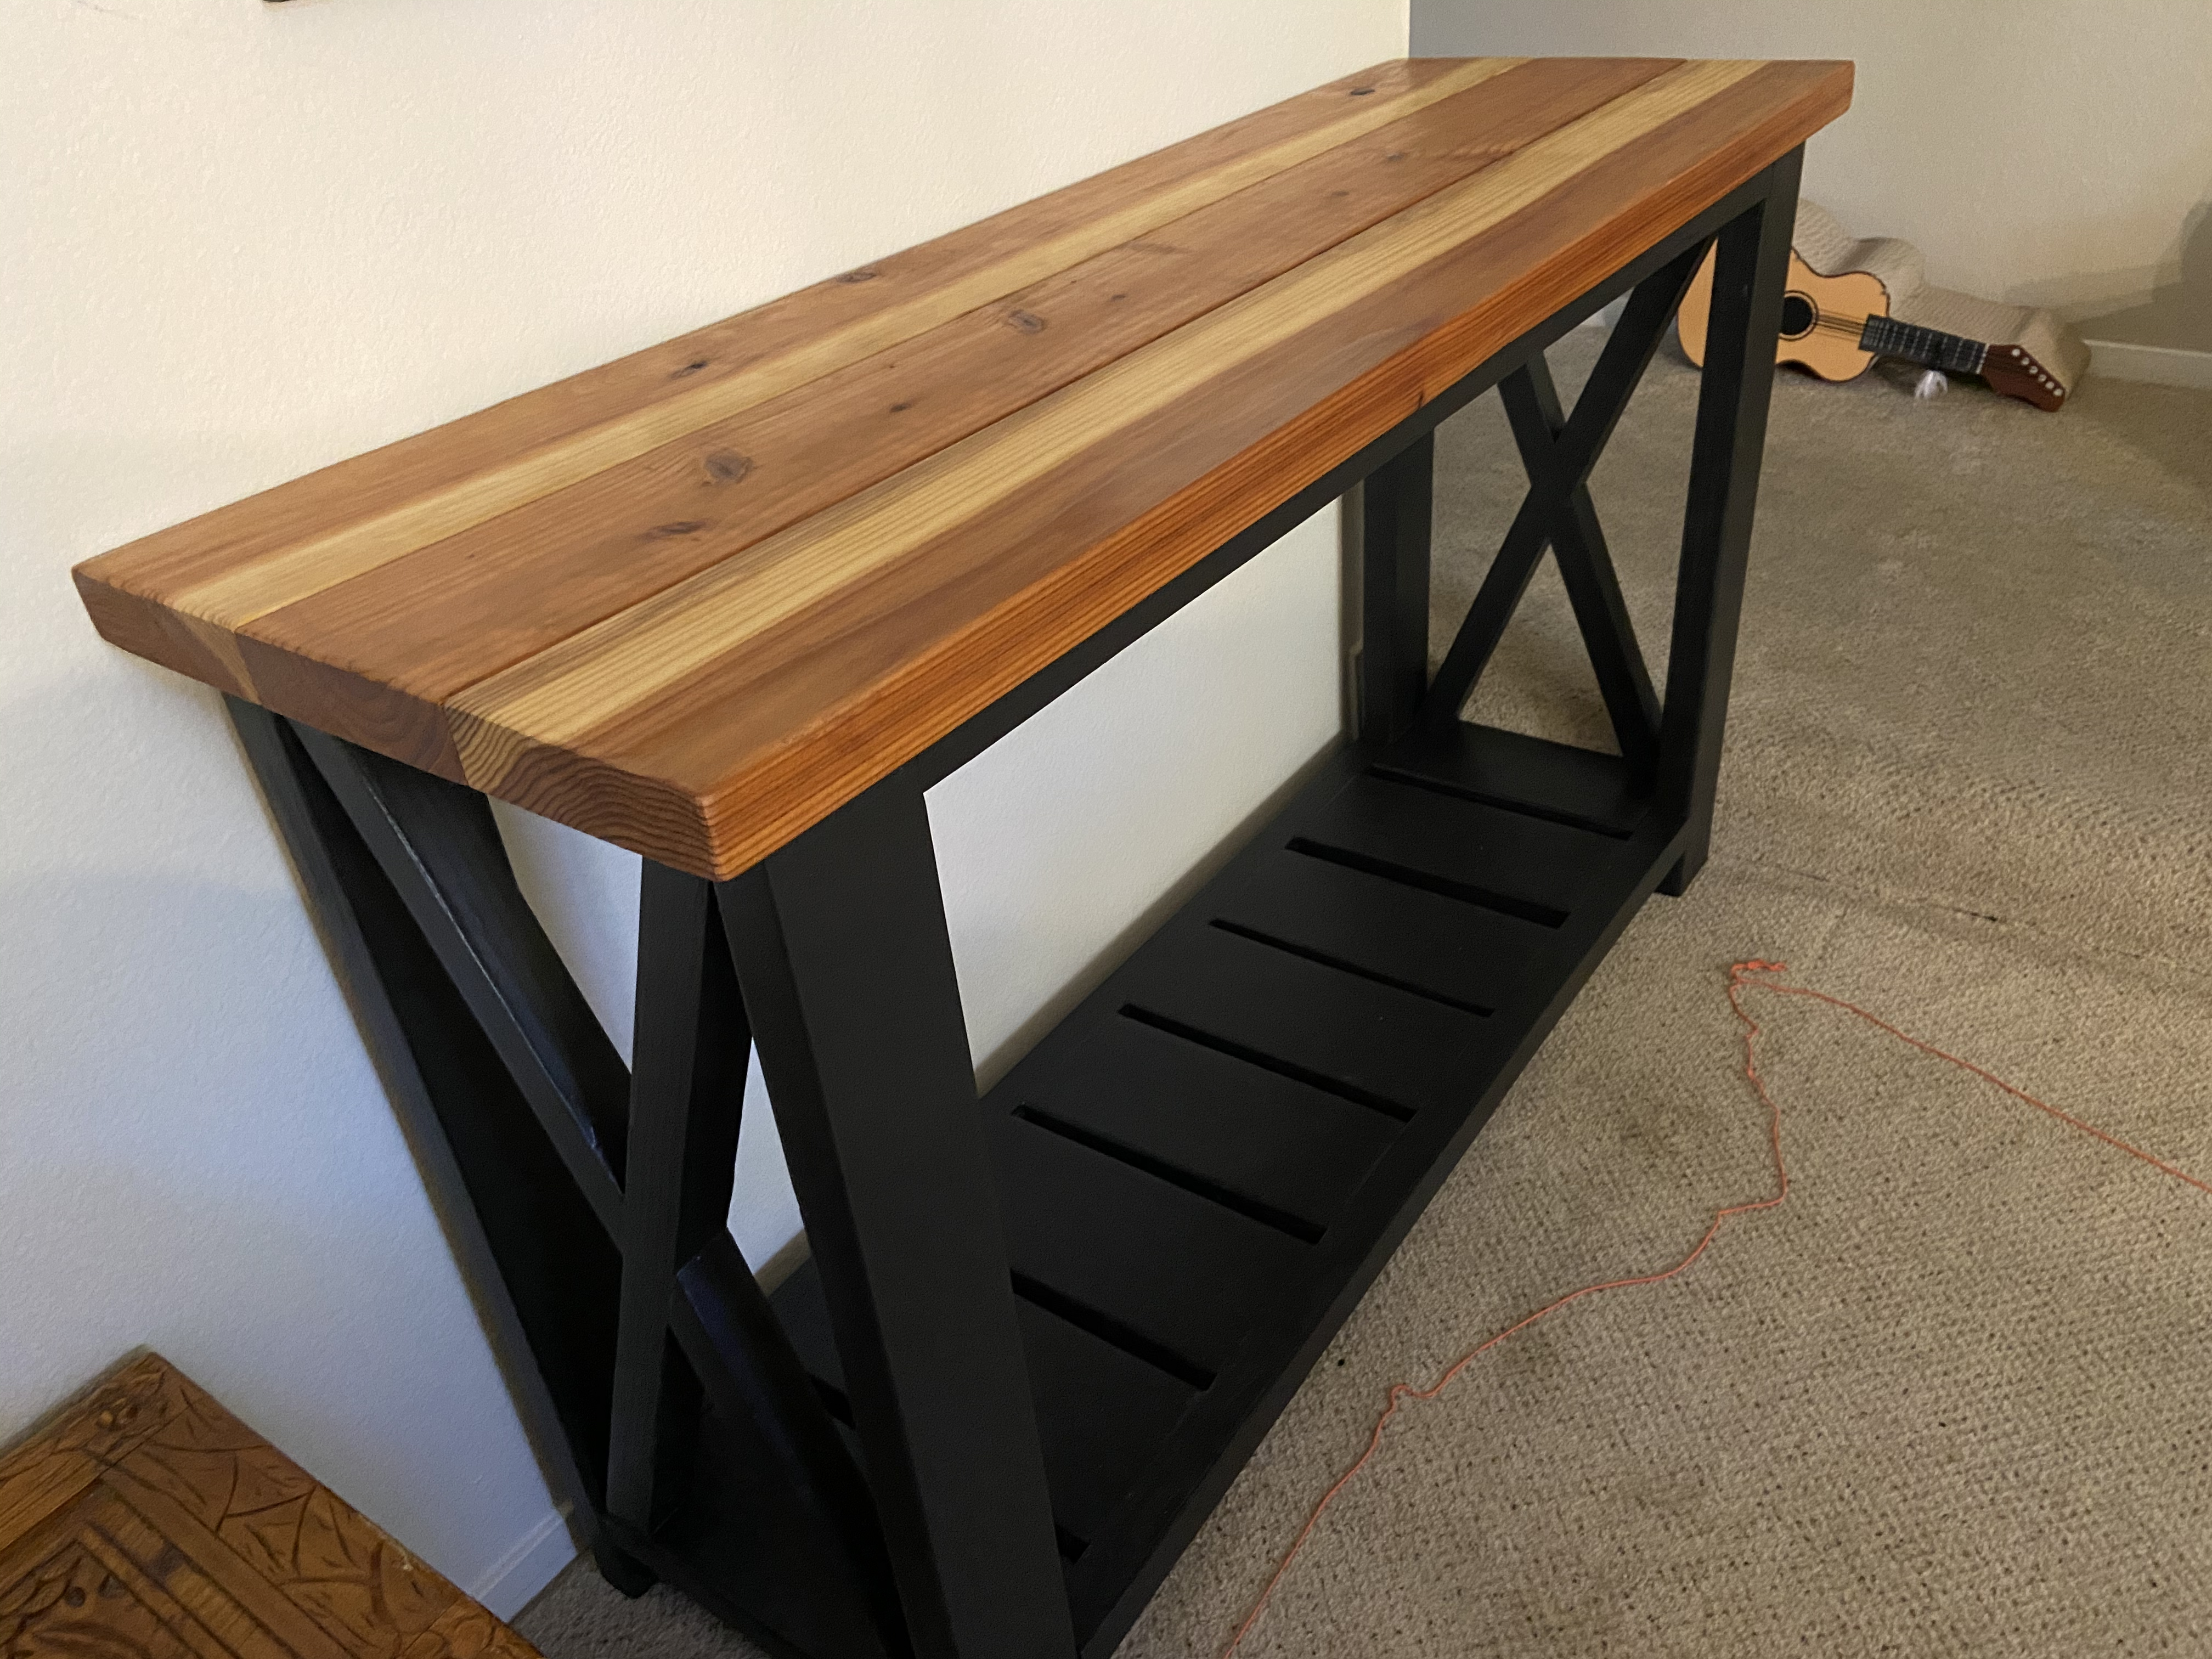 Console table with a black base and a redwood top